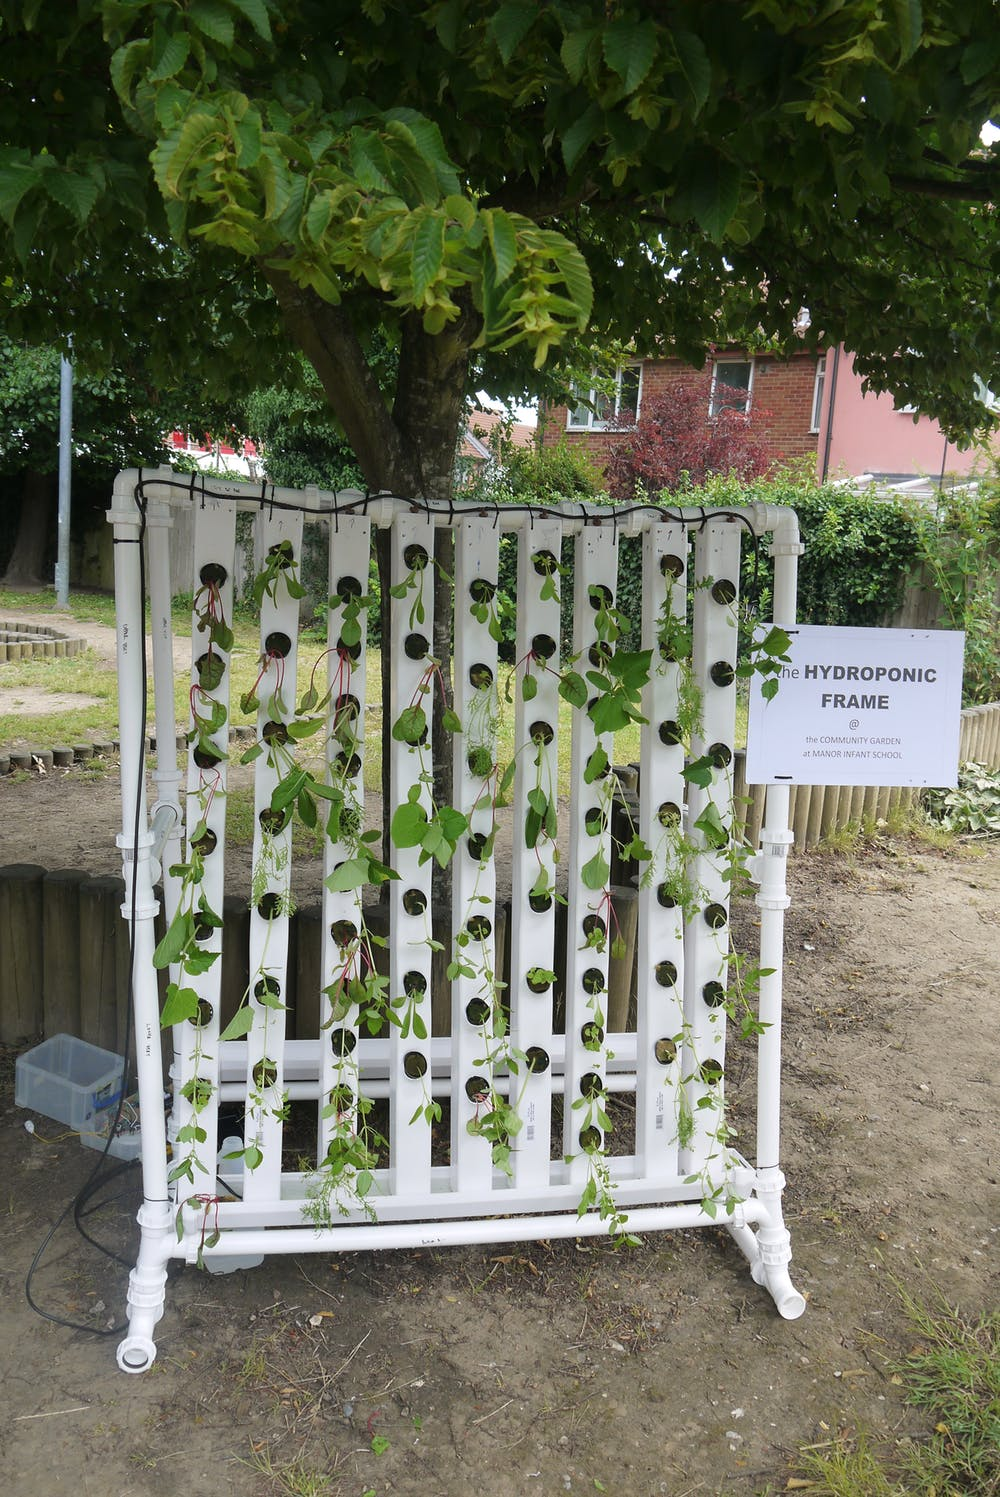 A simplified hydroponic frame in Portsmouth. Photo credit: Silvio Caputo/University of Portsmouth, Author provided